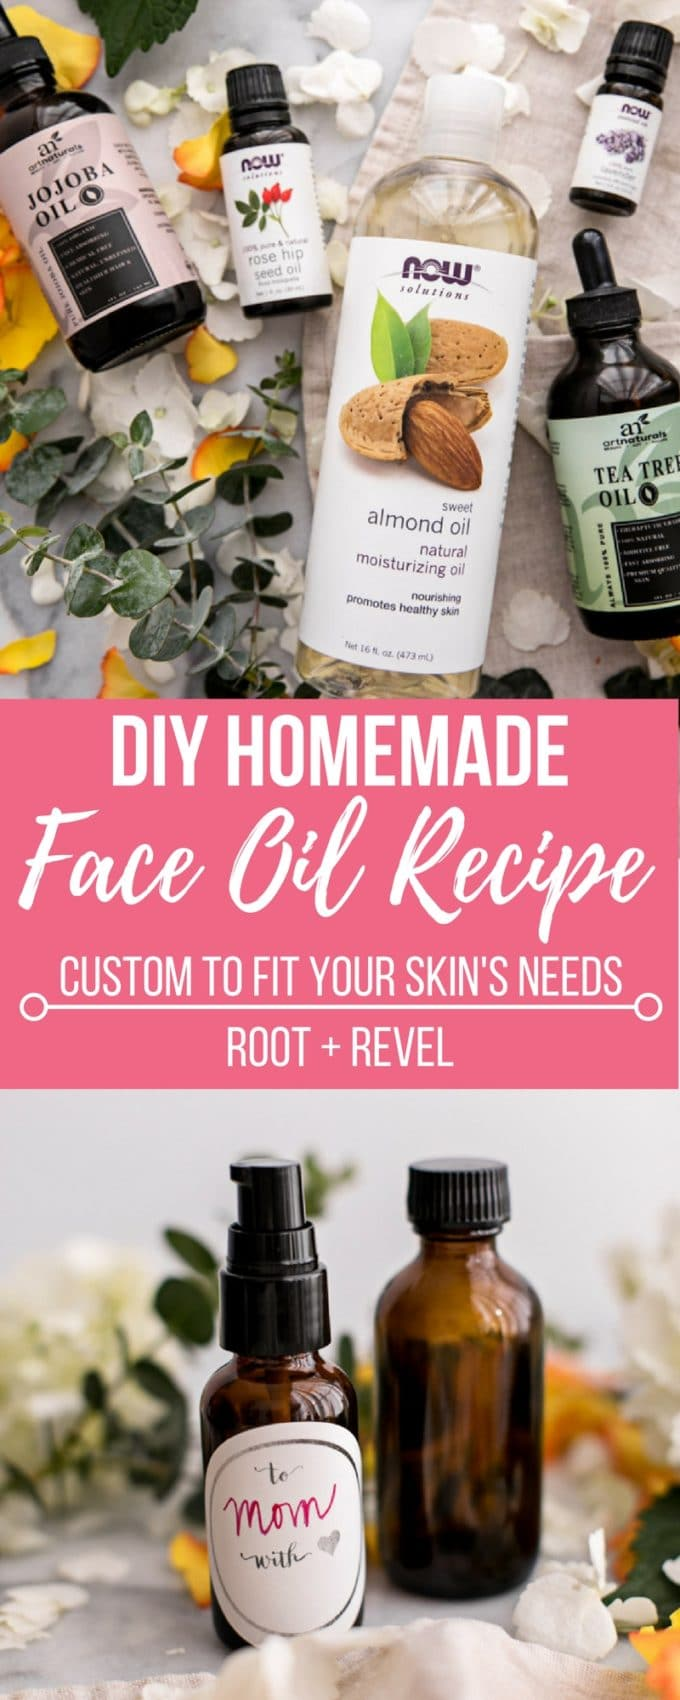 This Custom DIY Homemade Face Oil recipe is a natural, non-toxic and inexpensive skincare multi-tasker (moisturizer, cleanser, serum) can be tailored to all skin types (oily/acne-prone, dry, sensitive, mature), making it the perfect Mother's Day gift idea. Learn which carrier oils and essentials oils are best for your skin here!